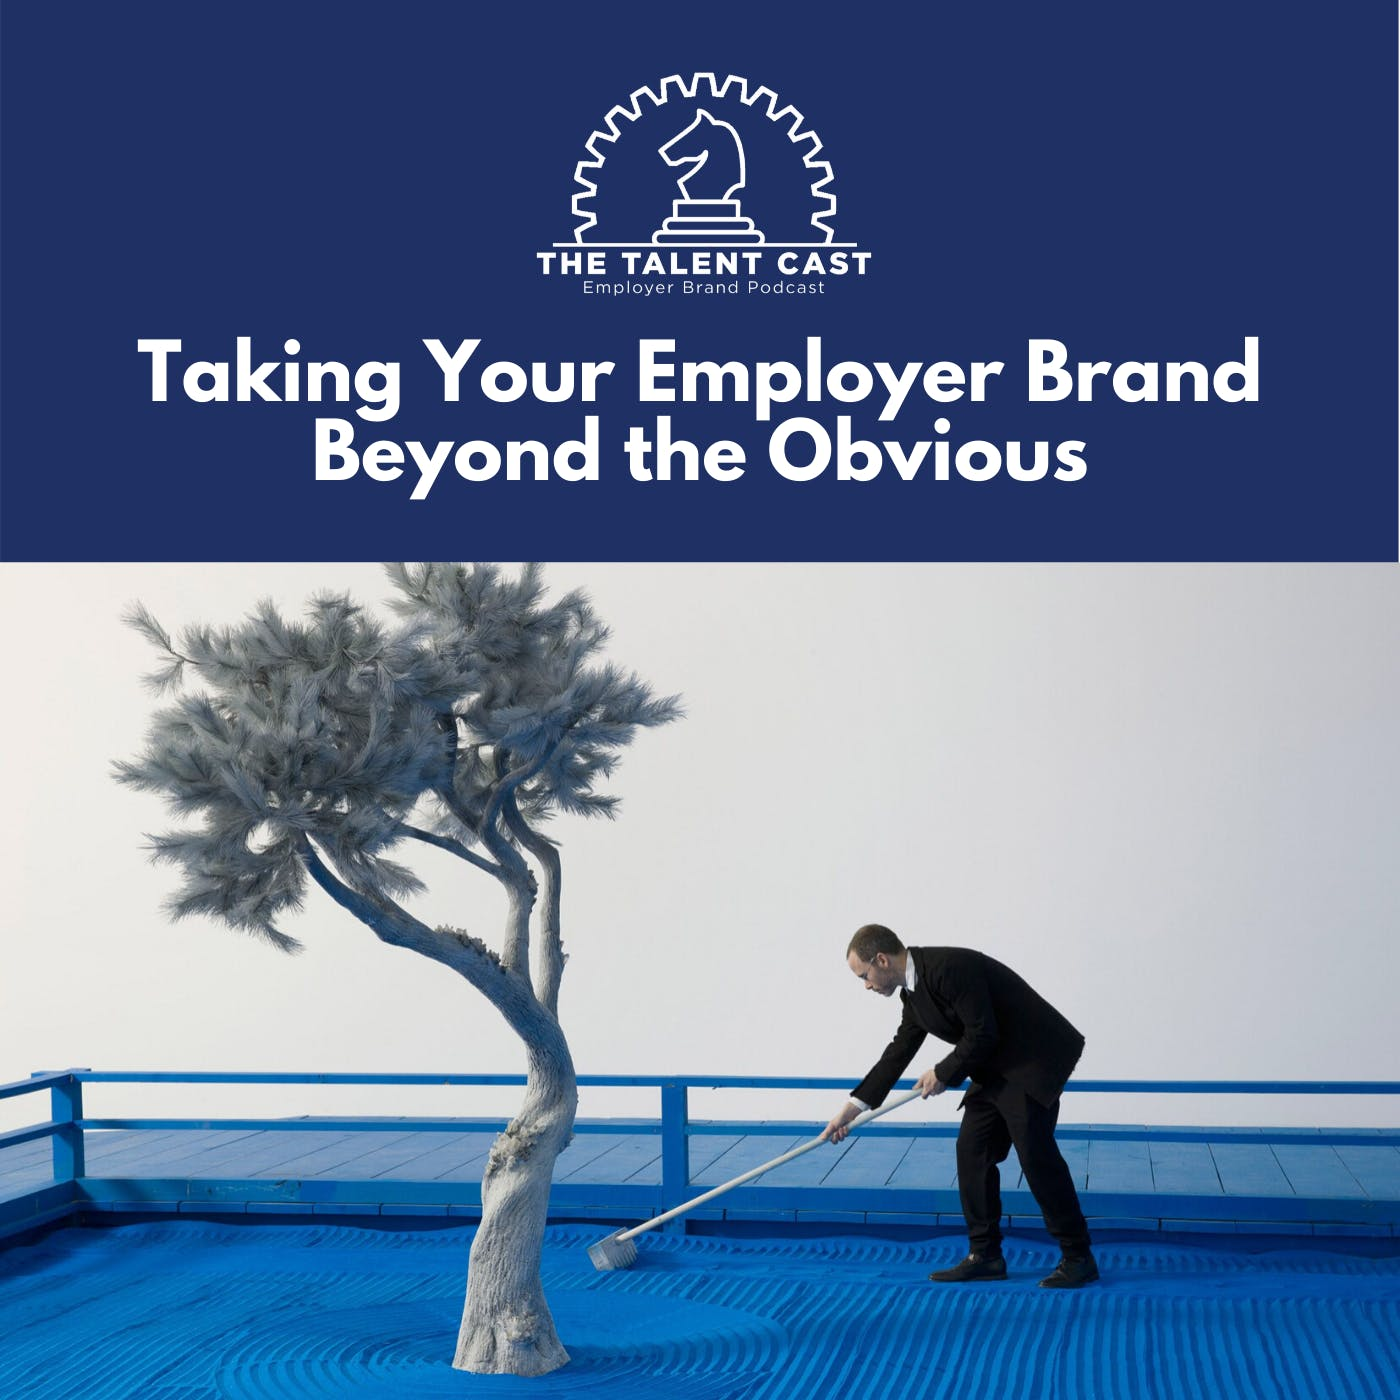 Taking Your Employer Brand Beyond the Obvious